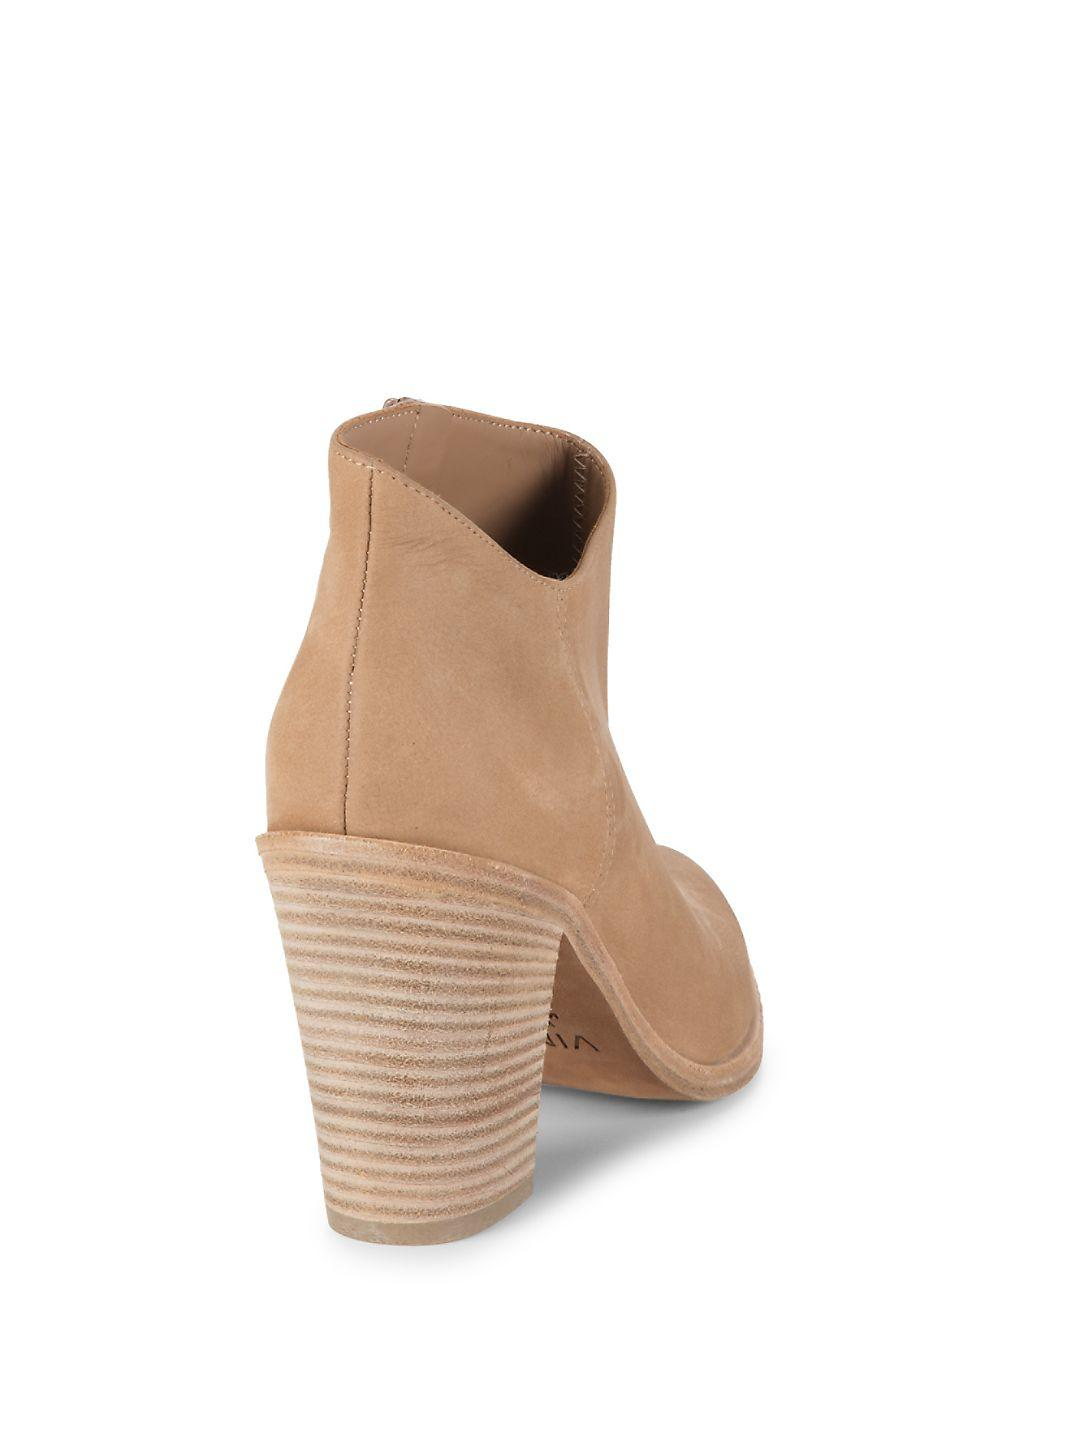 Vince Leather Easton Ankle Booties in Sand (Natural)